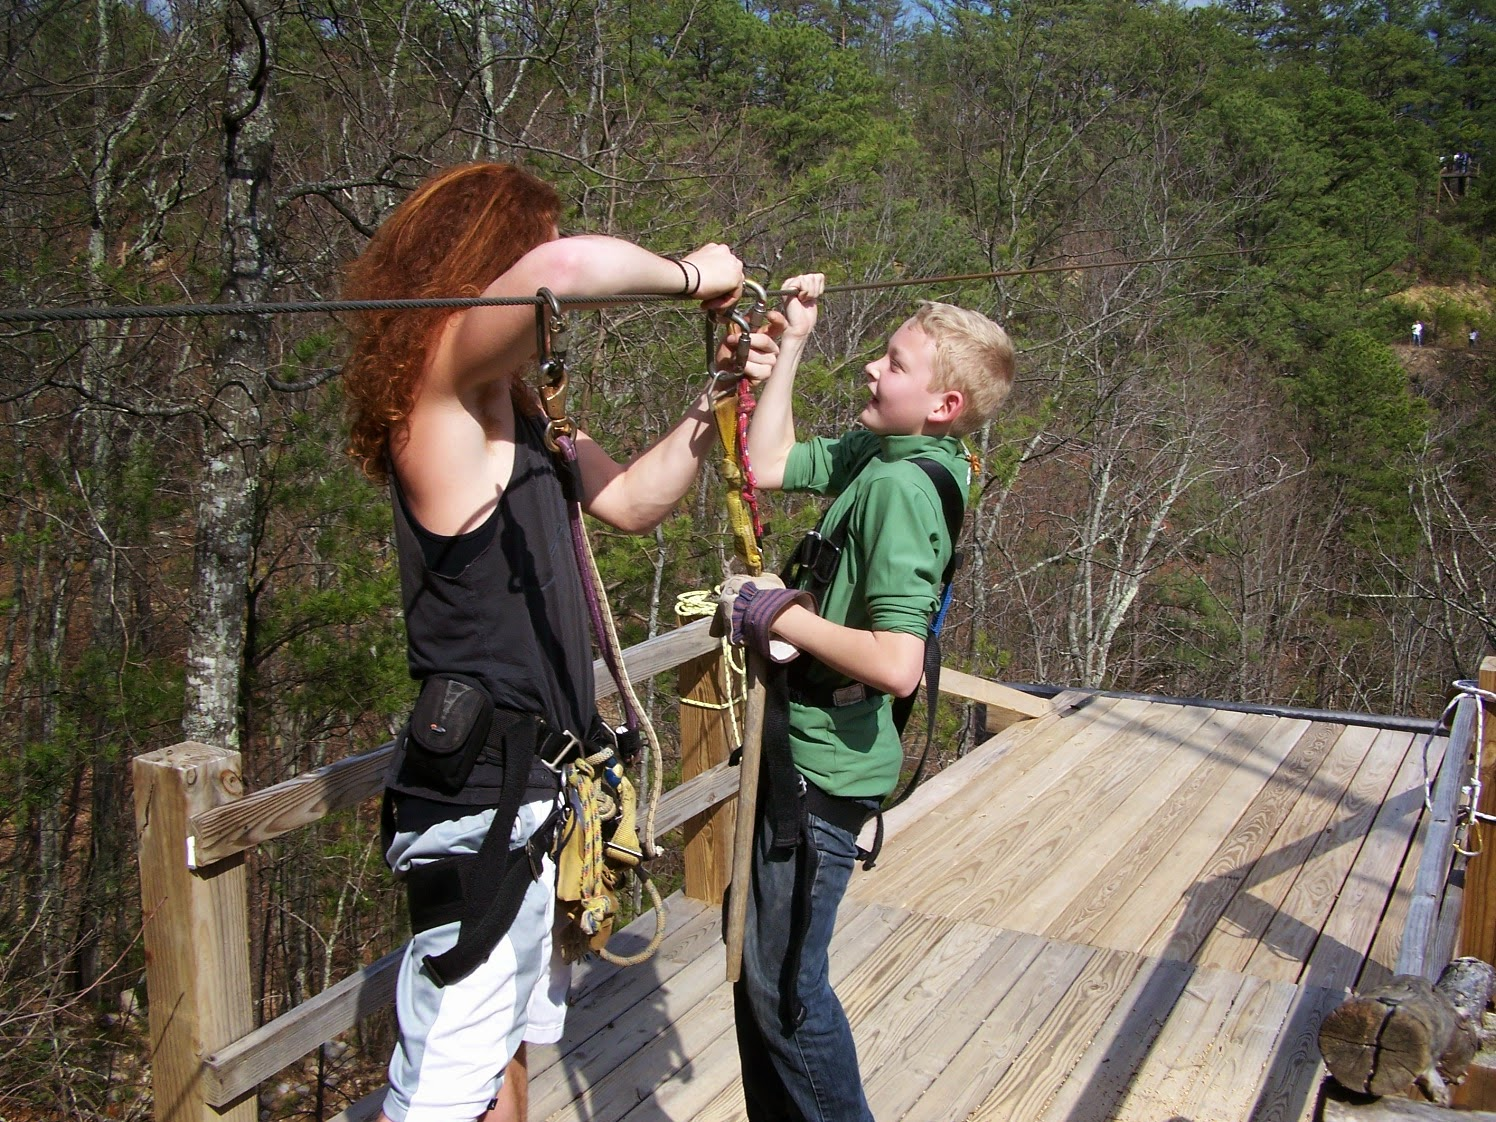 Zipline attraction near Gatlinburg